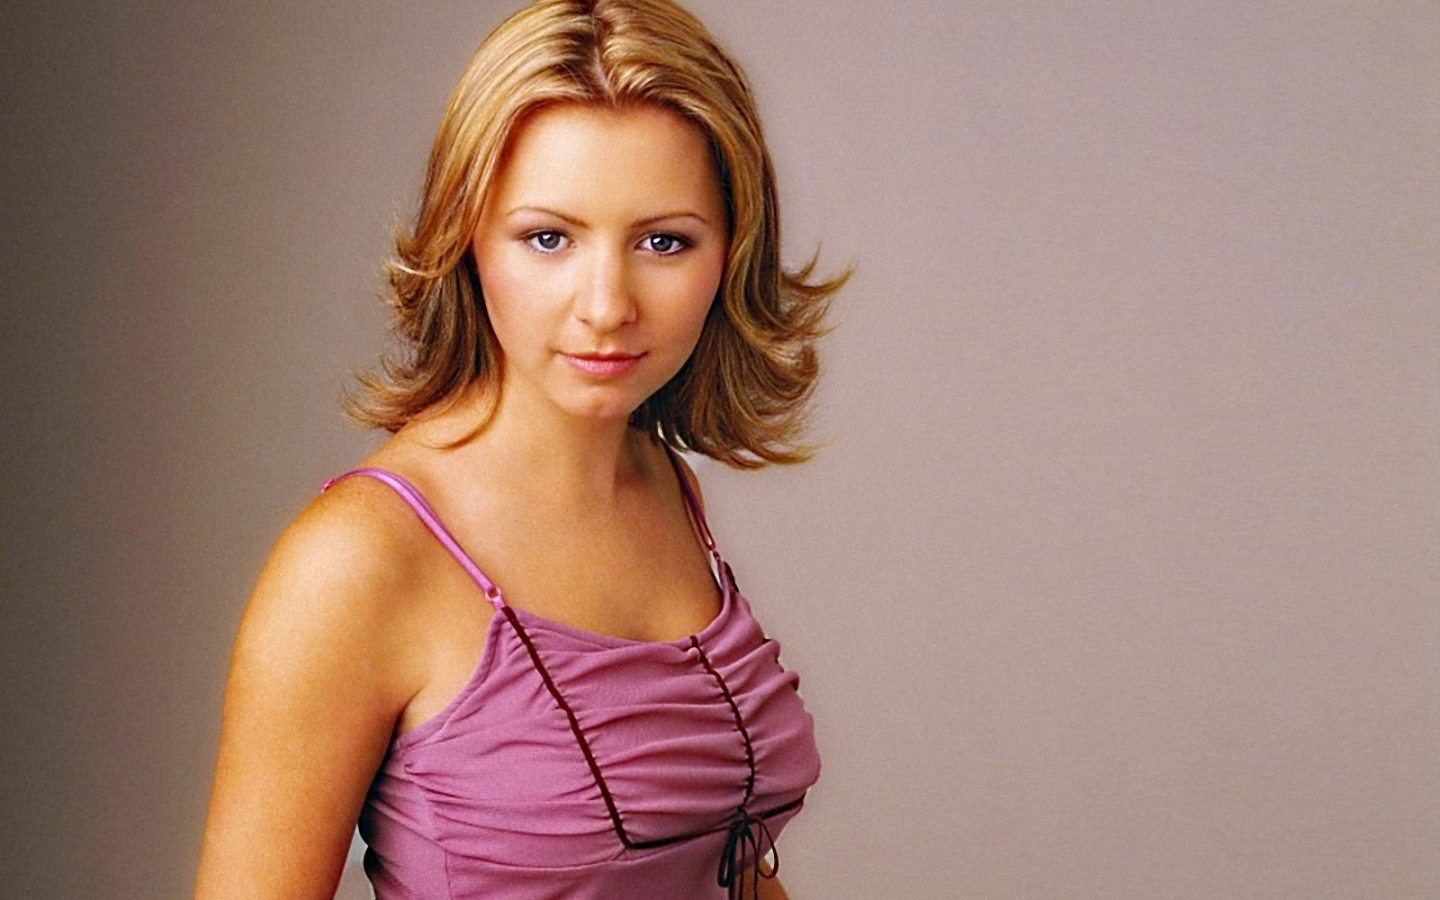 1440x900 - Beverley Mitchell Wallpapers 10